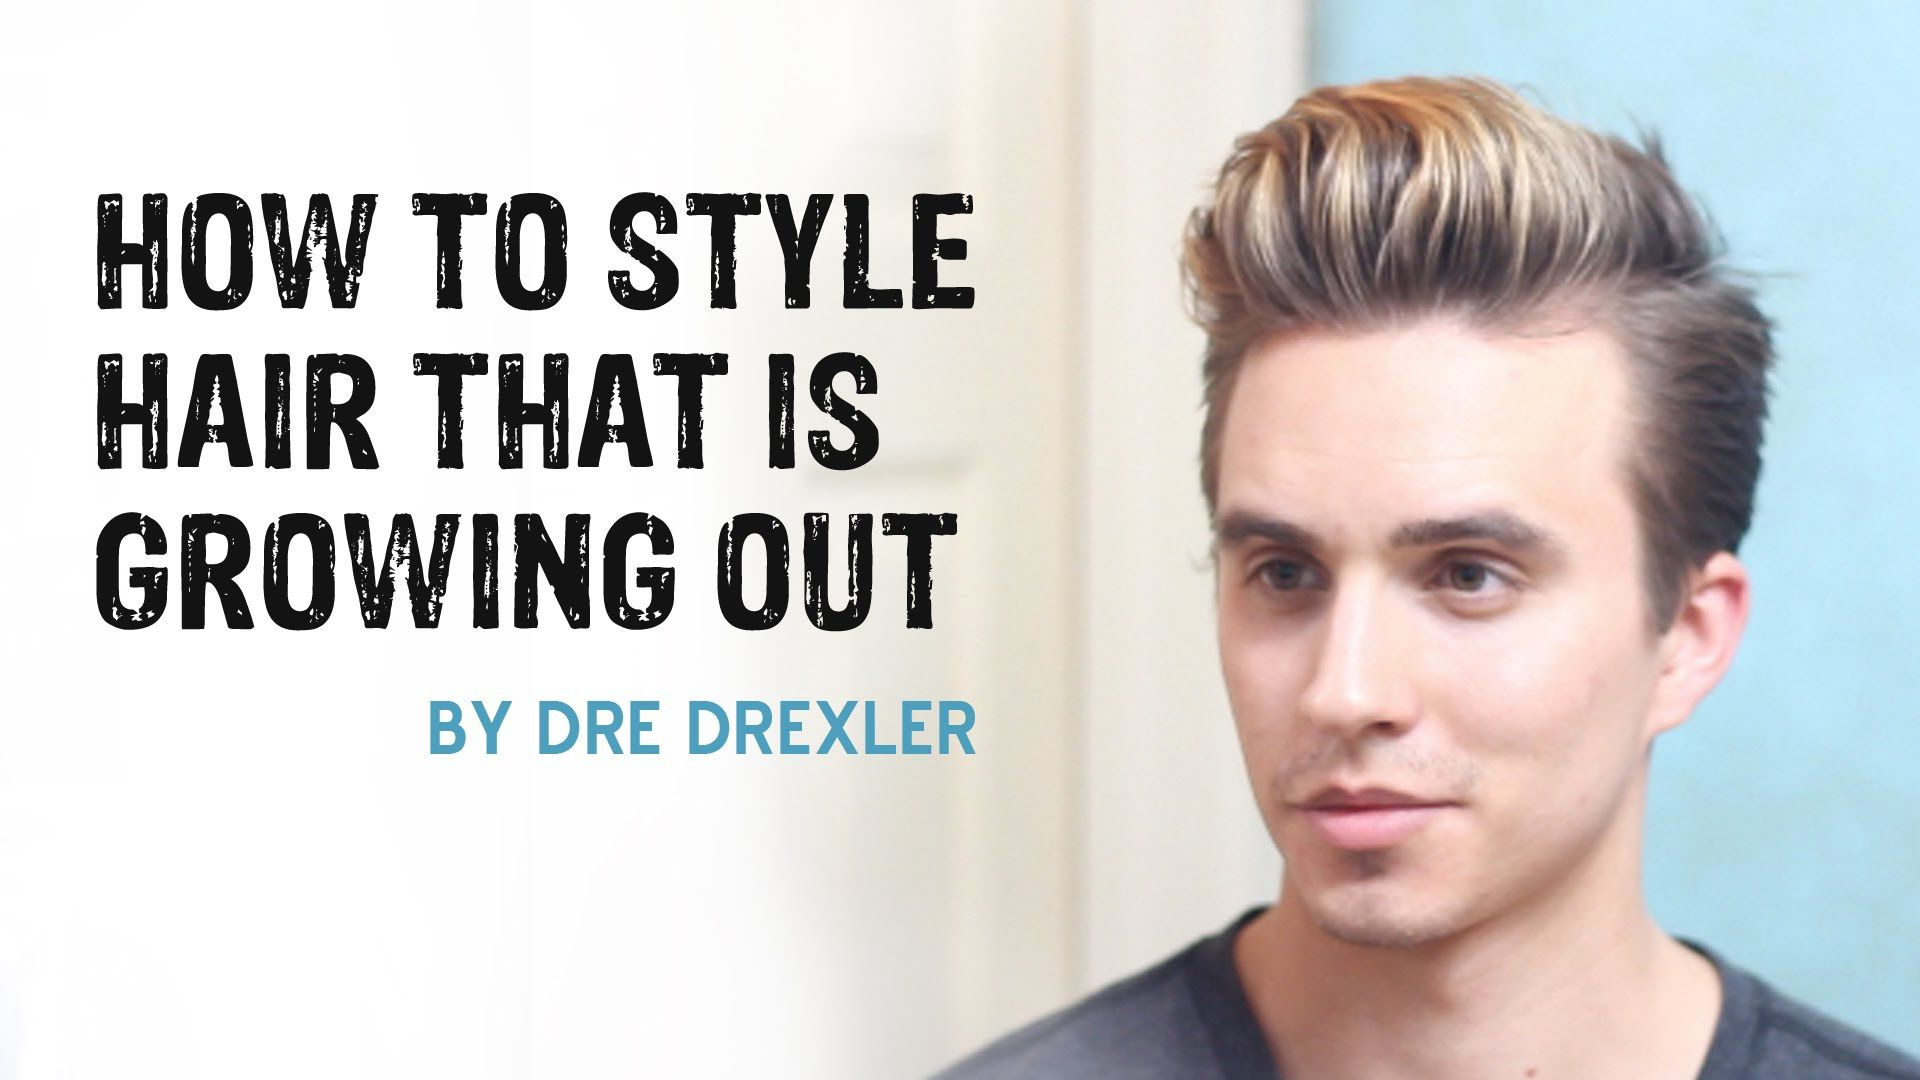 How To Style Hair Growing Out Ditching The Undercut Men S Hairstyles Growing Out Hair Growing Hair Out Men Short Hairstyles For Thick Hair